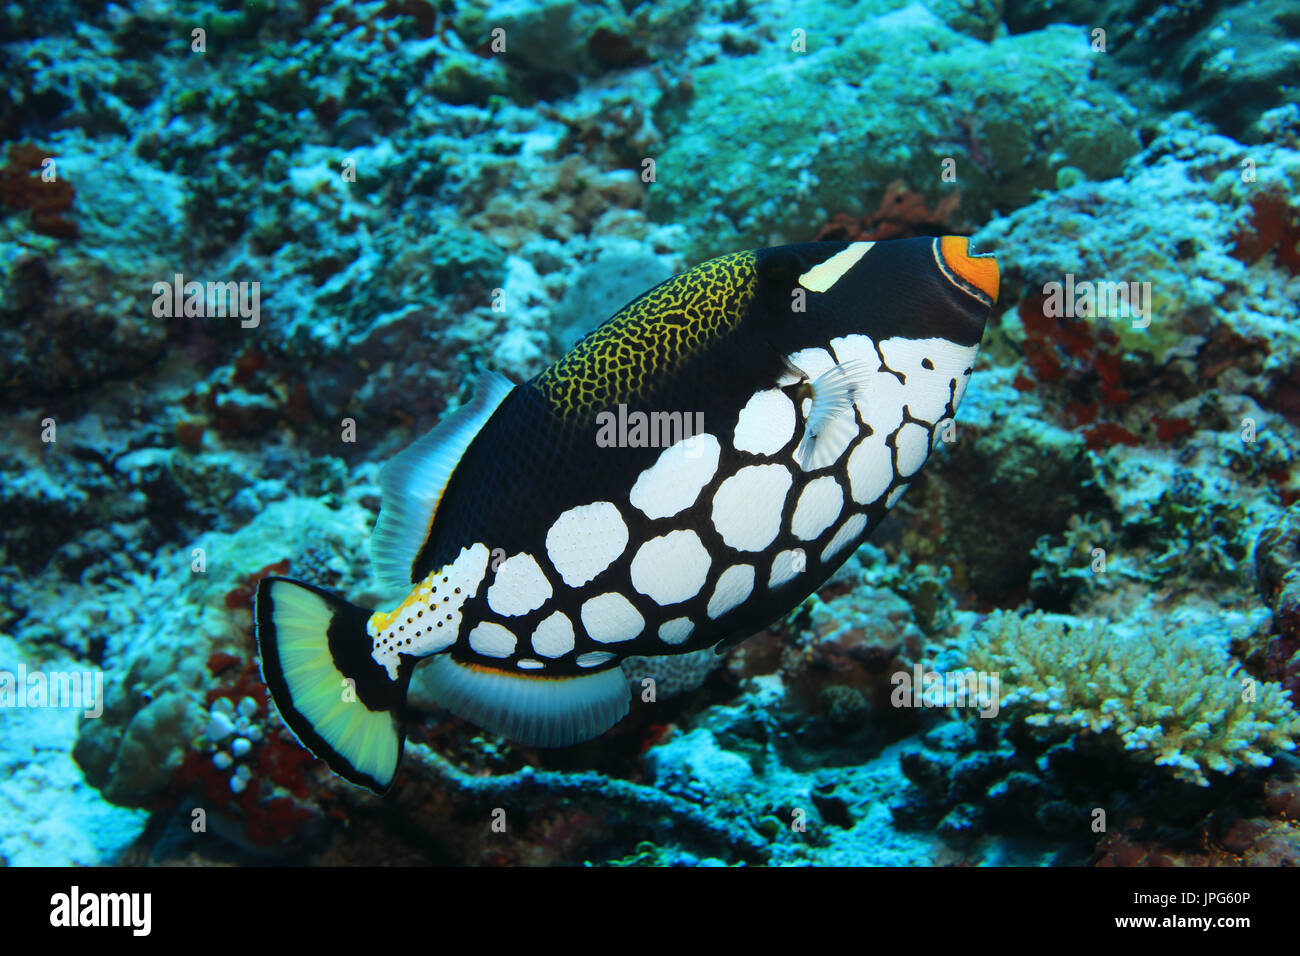 Clown triggerfish (Balistoides conspicillum) underwater in the coral reef of the indian ocean - Stock Image